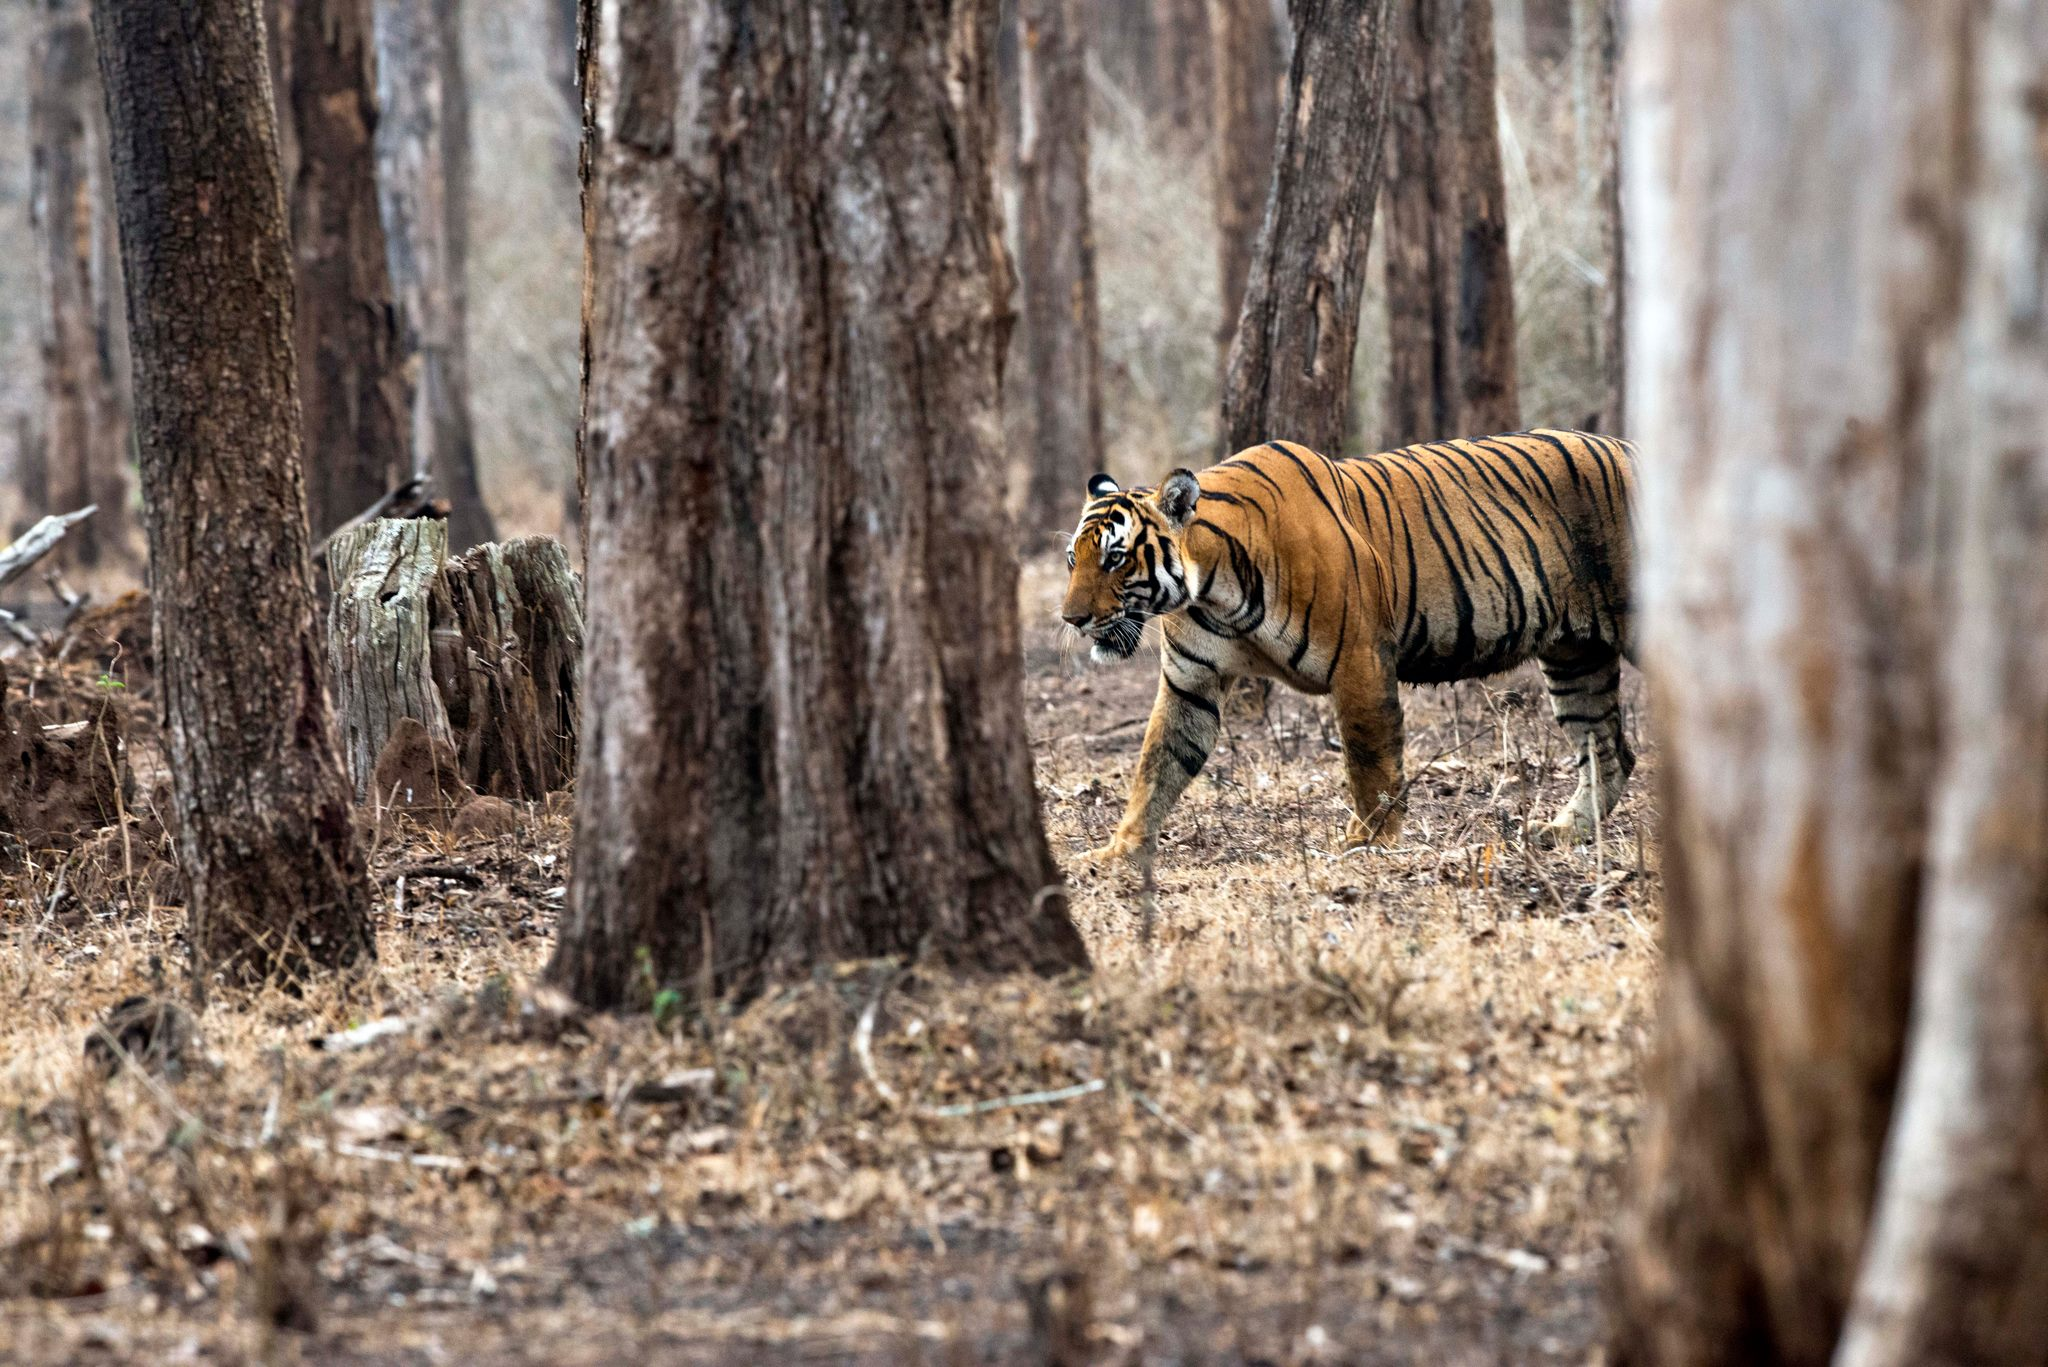 Ecological Niche The Bengal Tiger